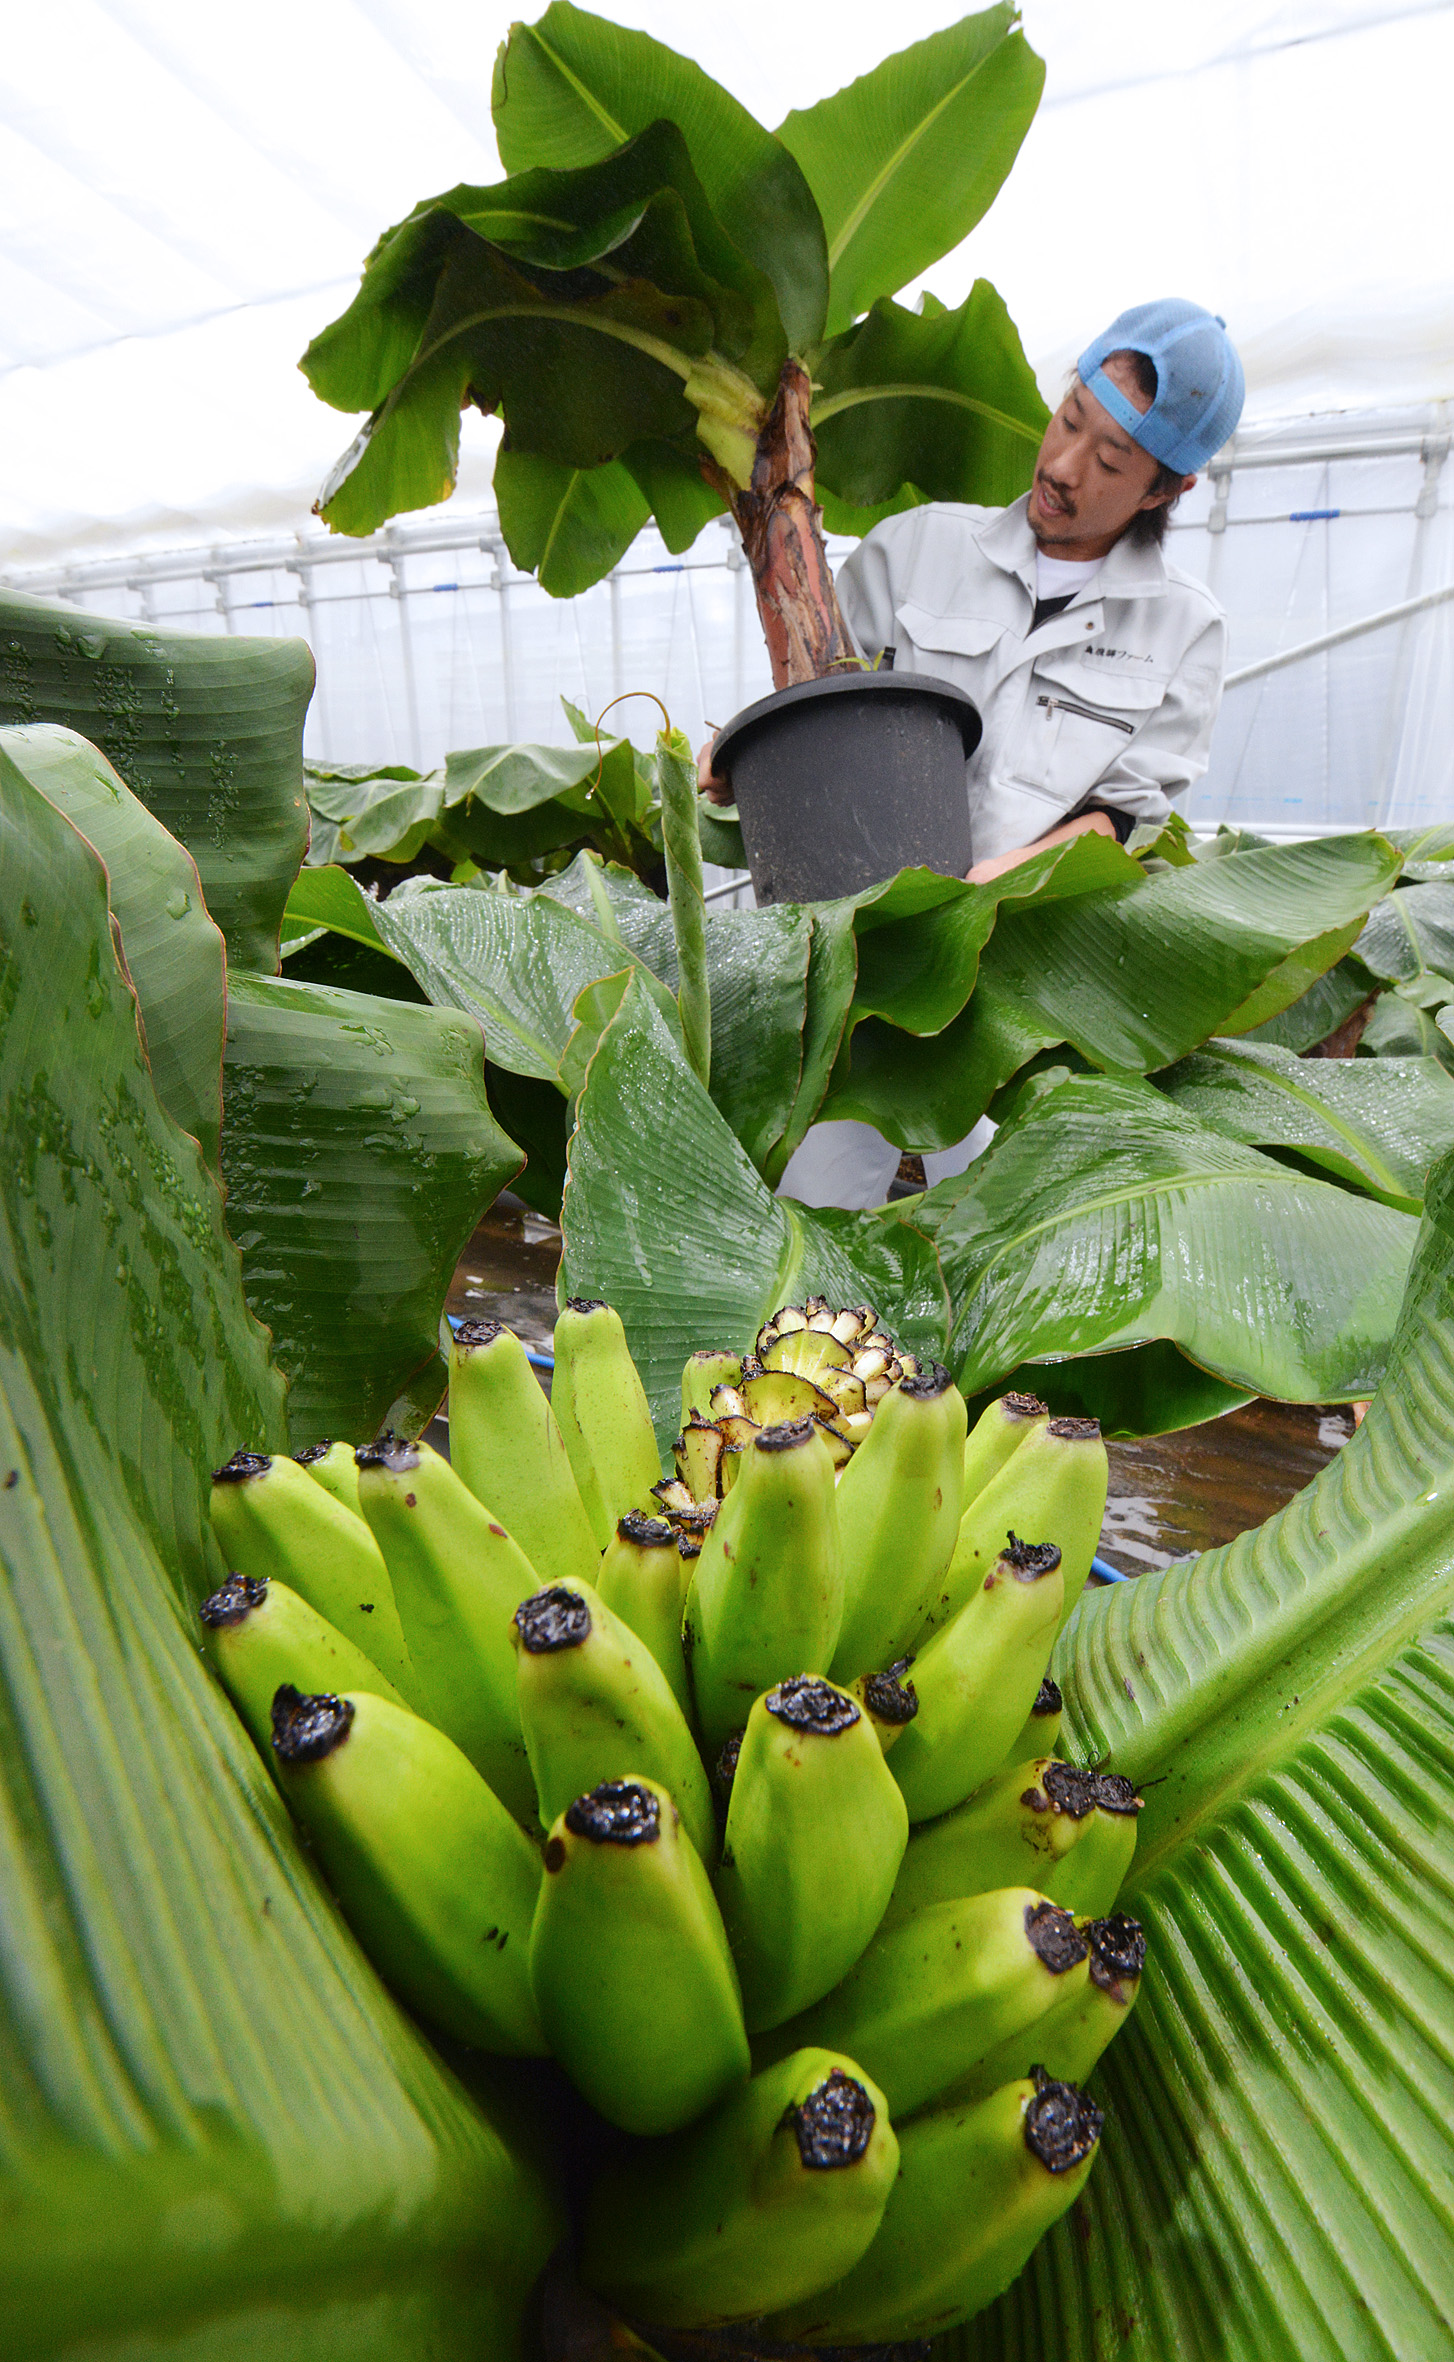 Shigeno in Takayama, Gifu Prefecture, holds a waist-high banana tree which can be grown at home to bear fruit.